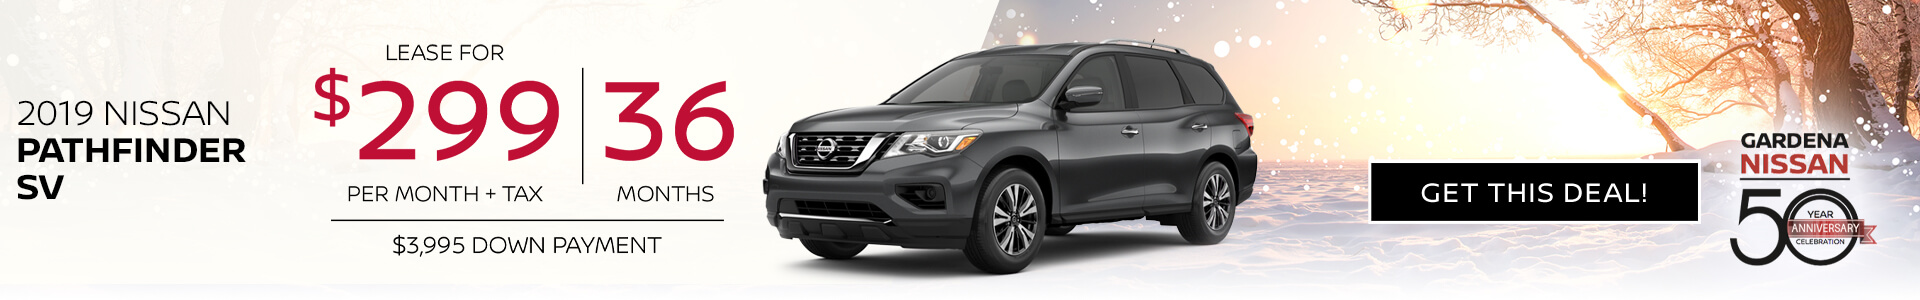 Pathfinder - $299 Lease